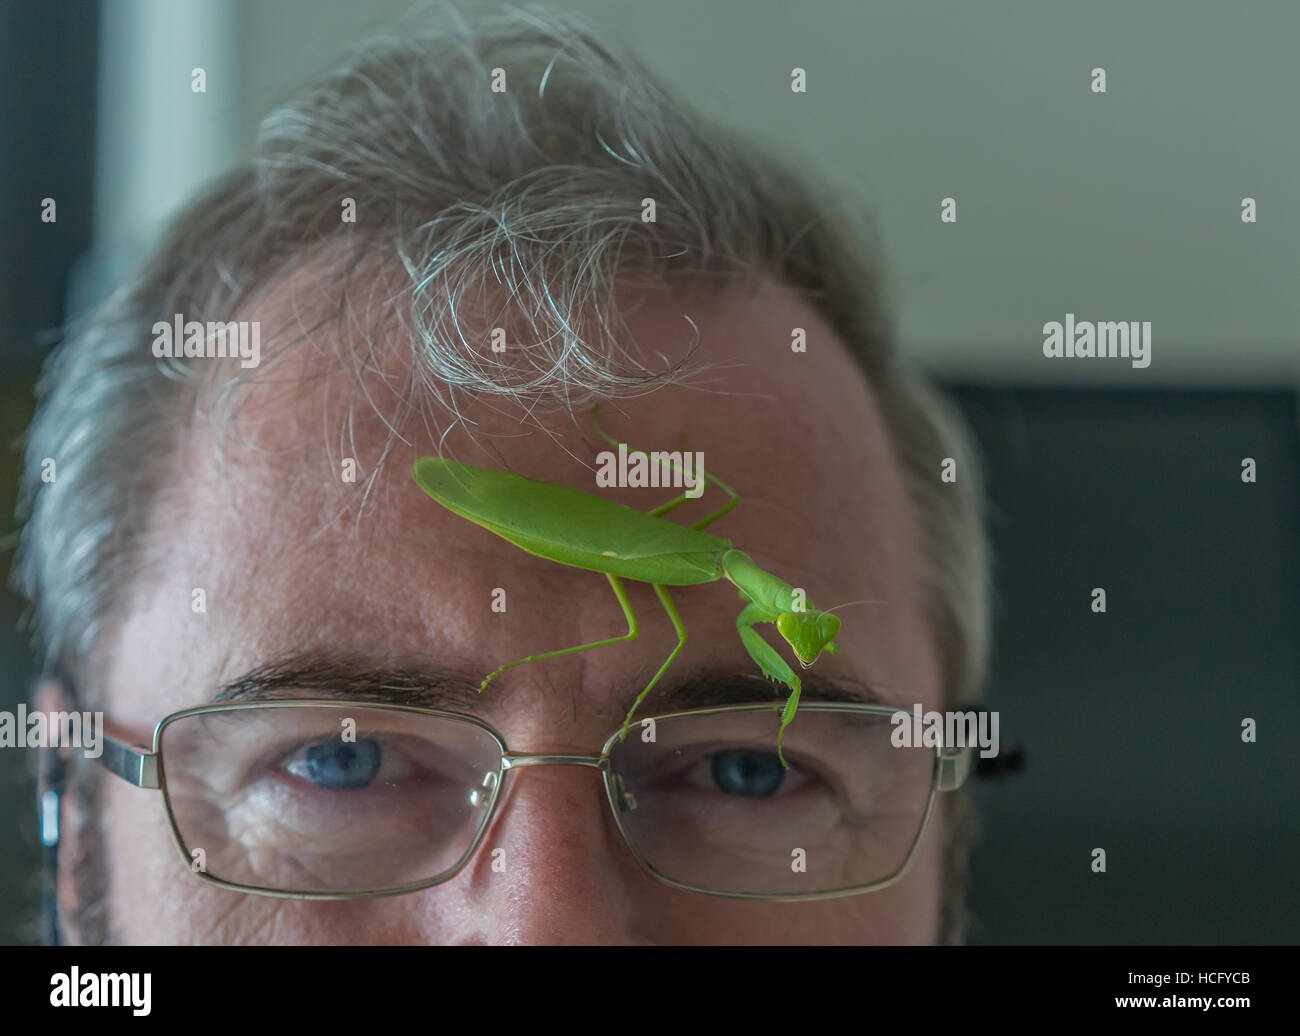 Preying Mantis on a mans face. - Stock Image